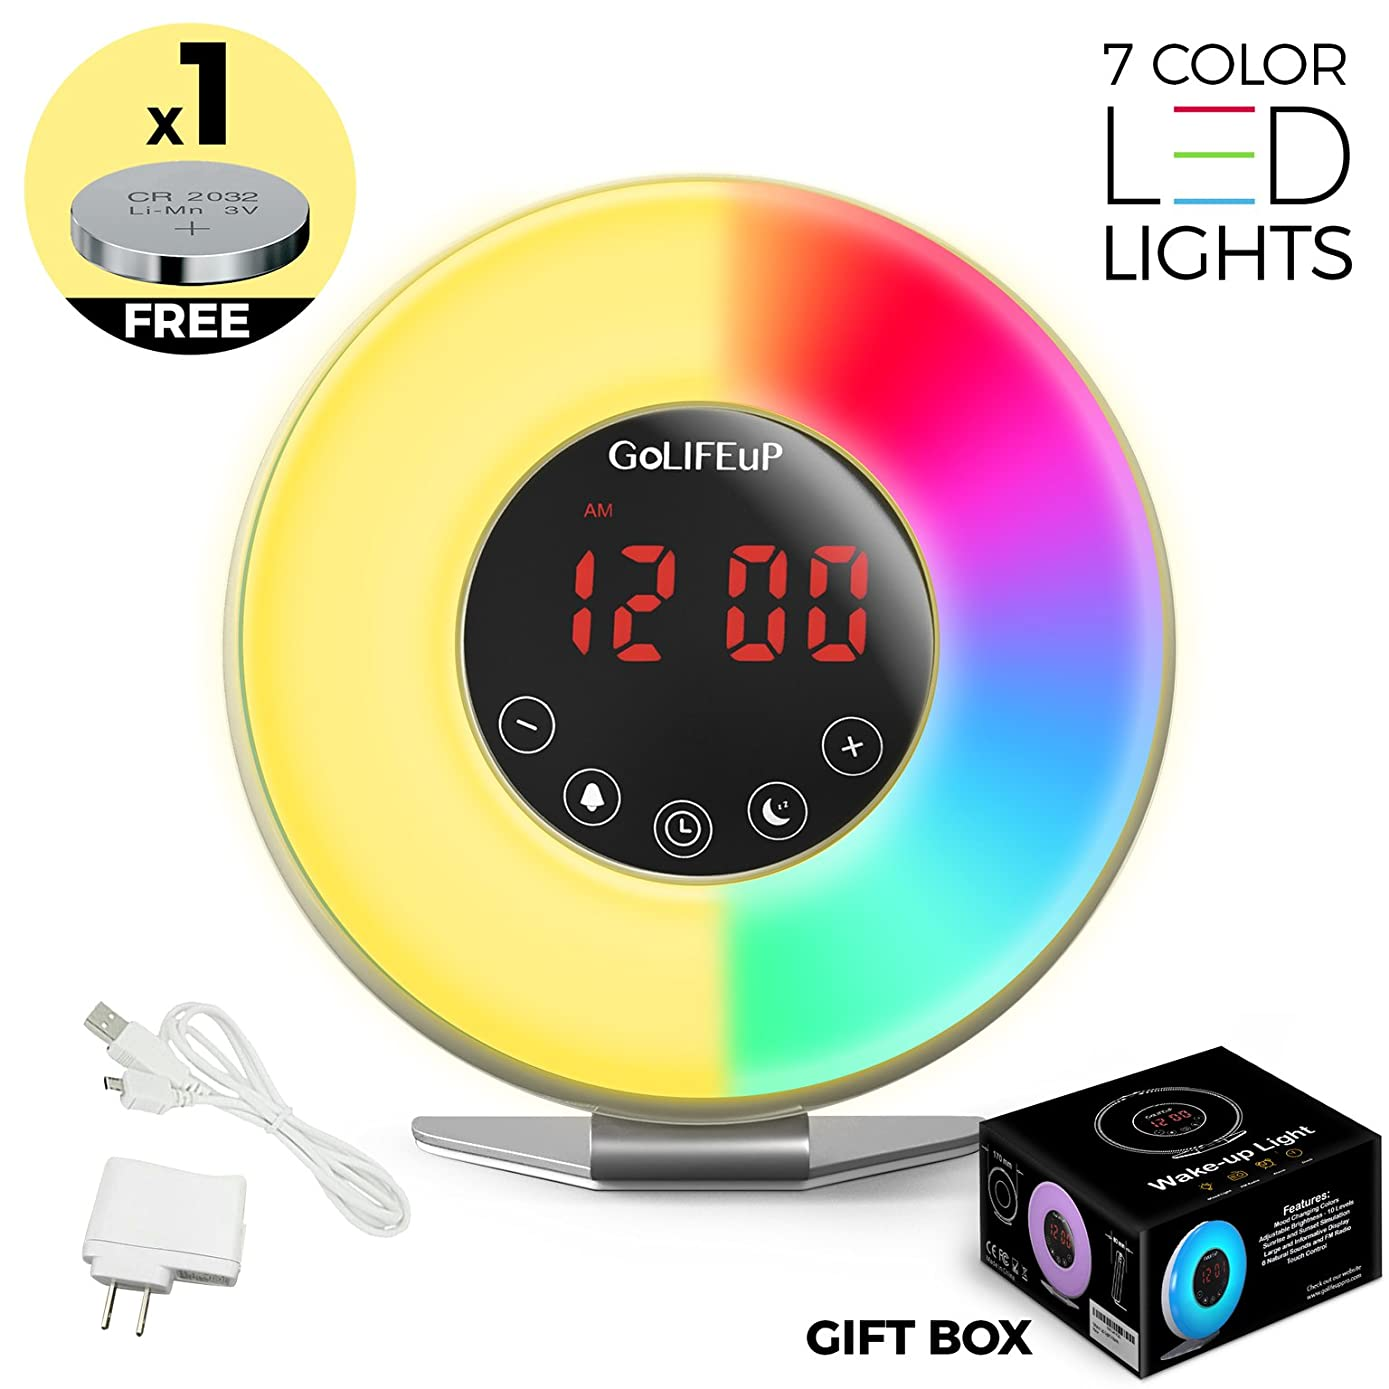 Alarm Clock Radio Digital Sunrise and Sunset simulation Wake Up Light for kids teens women and men with Touch LED display 6 natural sounds 7 colors with USB charger - perfect electronic GIFT for all